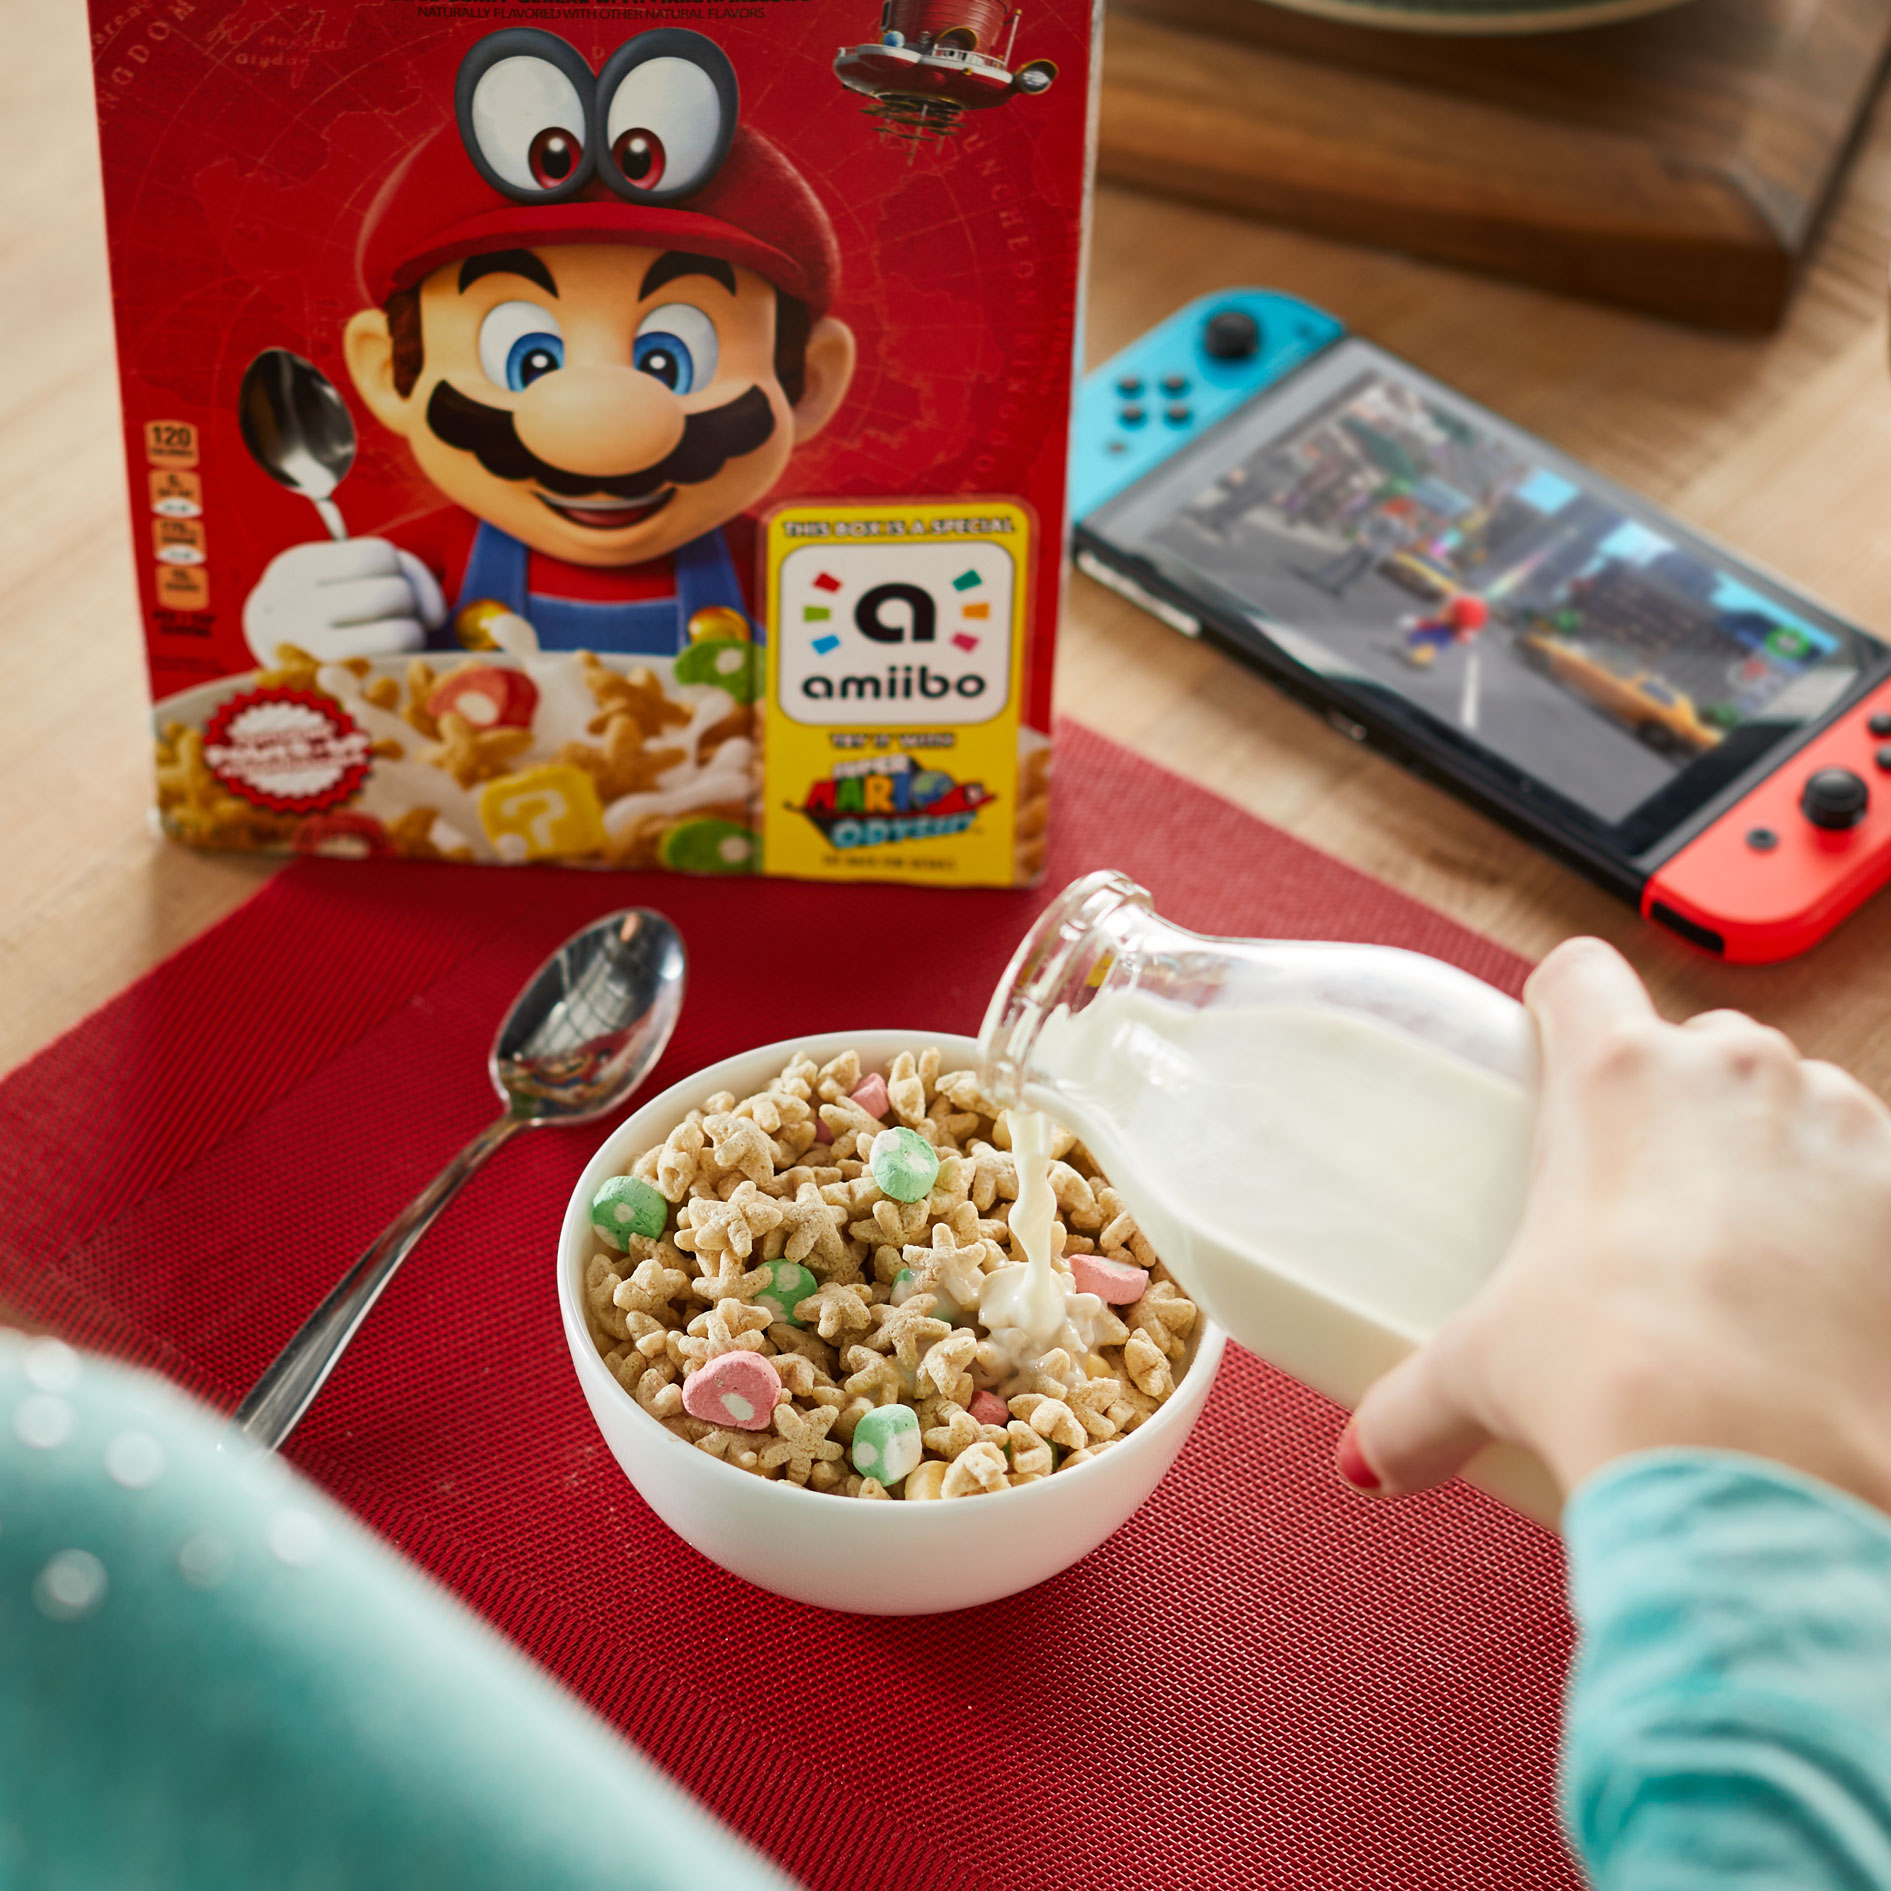 Yes, Super Mario Cereal Is A Thing And The Box Functions